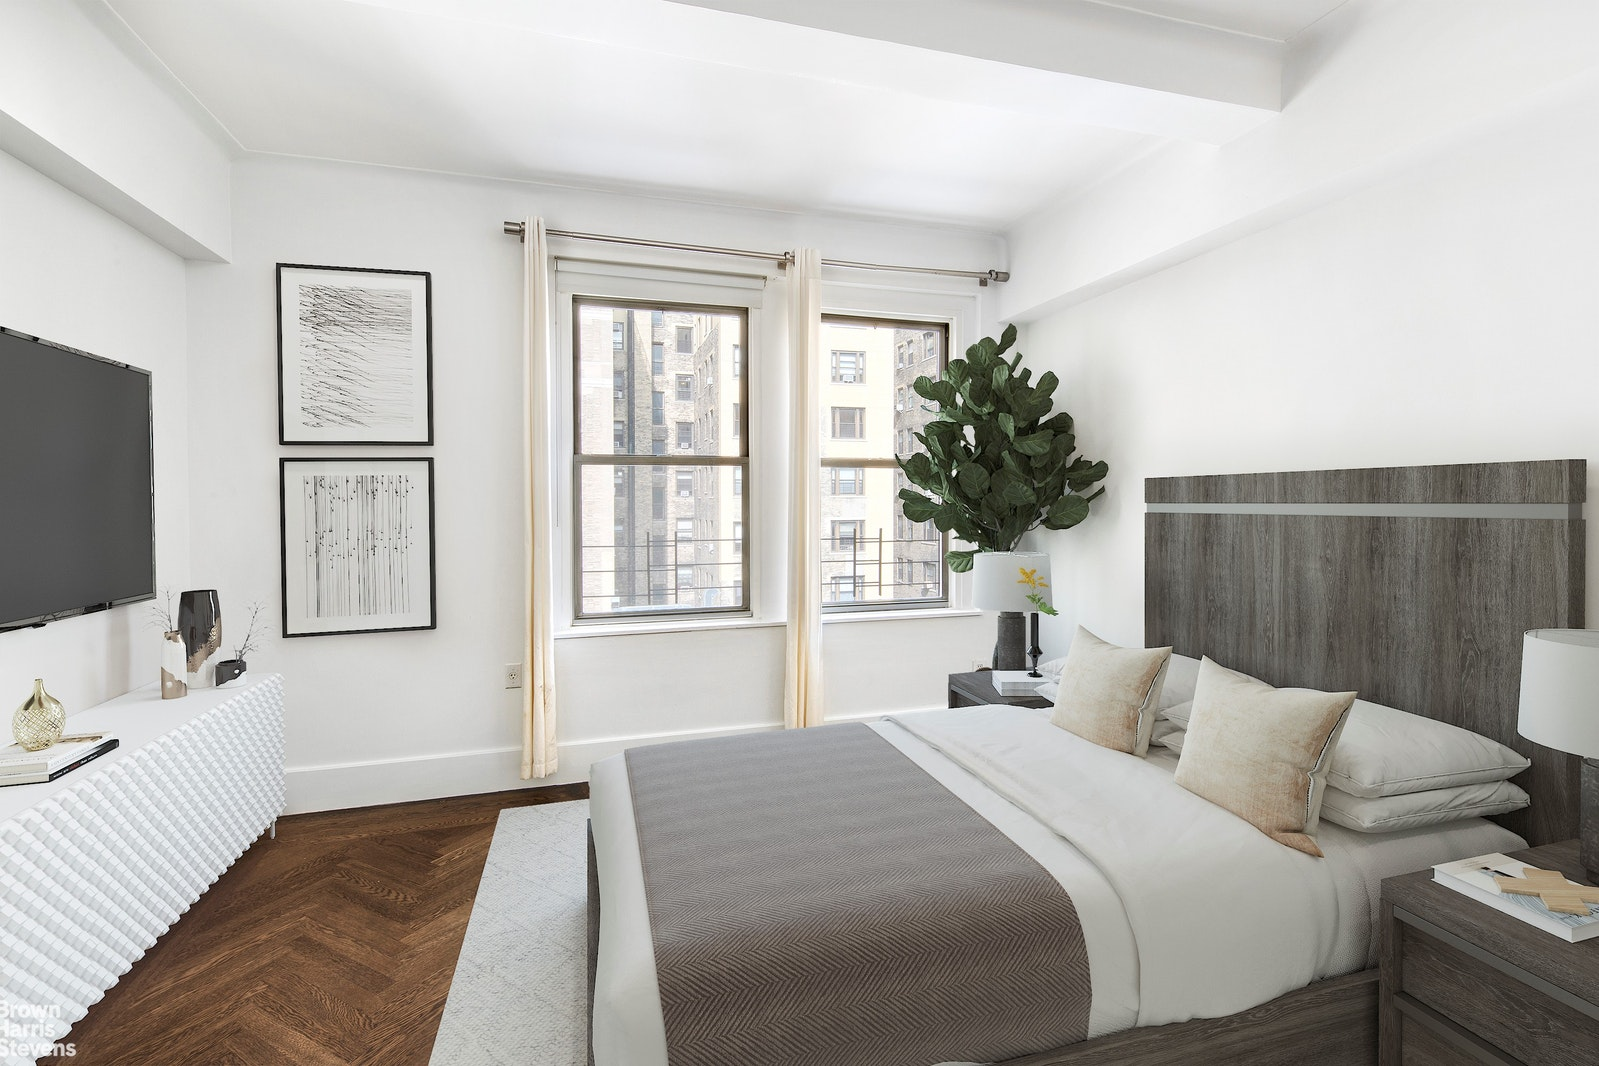 215 WEST 78TH STREET 9A, Upper West Side, $1,850,000, Web #: 20376250